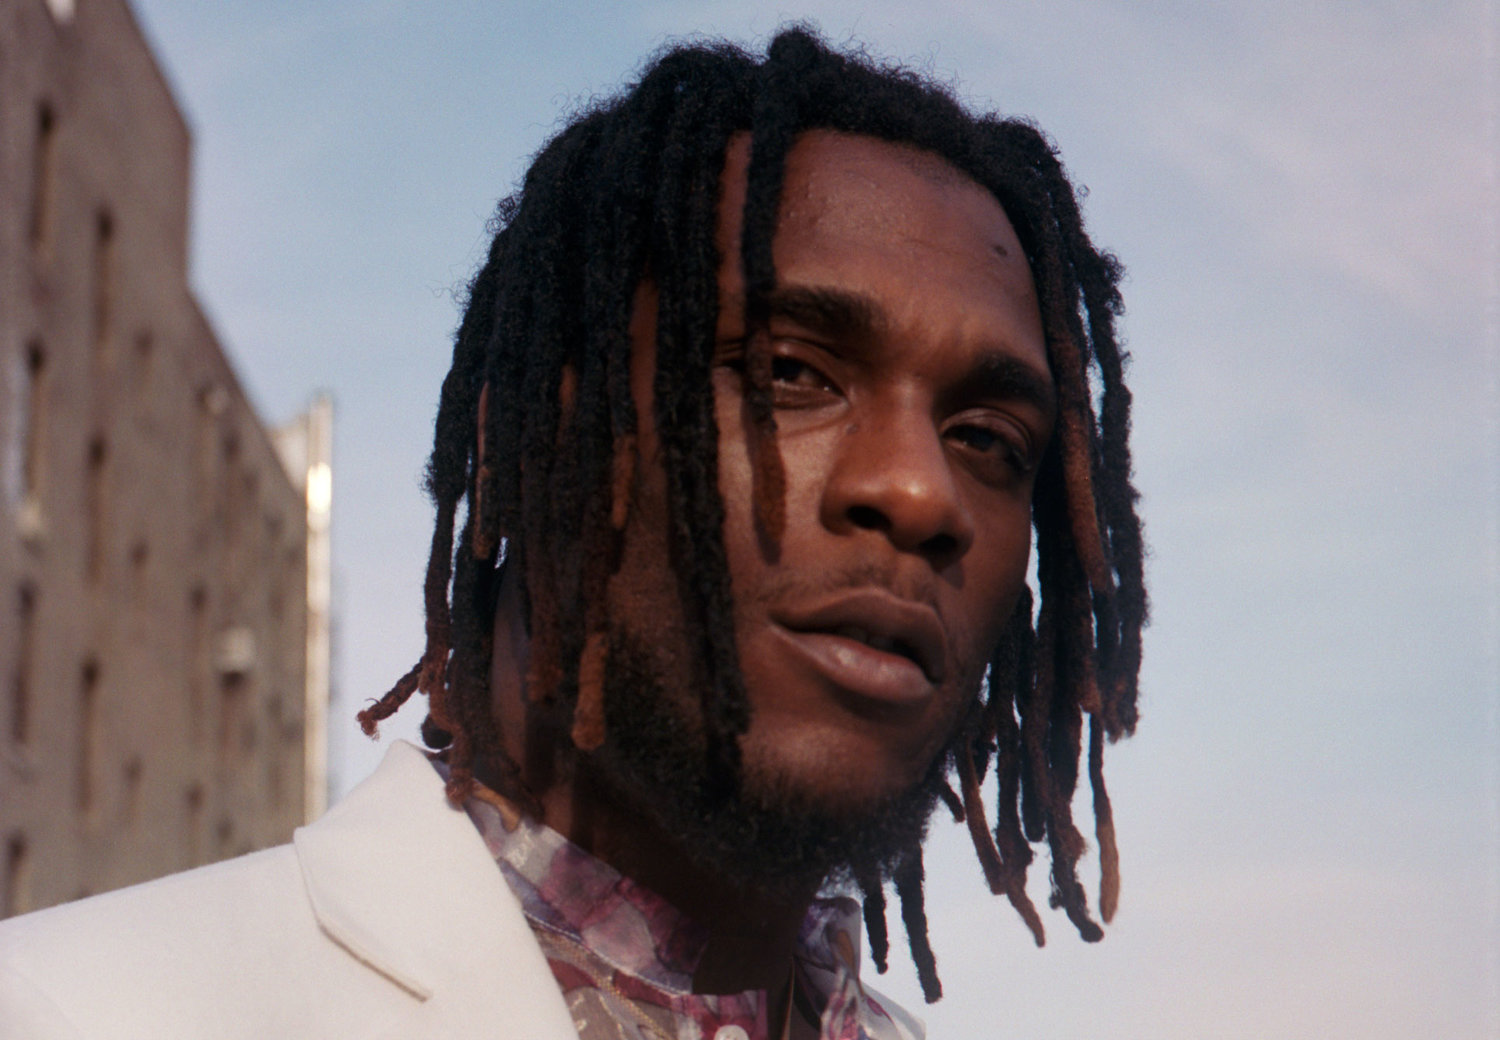 Burna Boy - Streets Of Africa | New Music - Conversations About Her